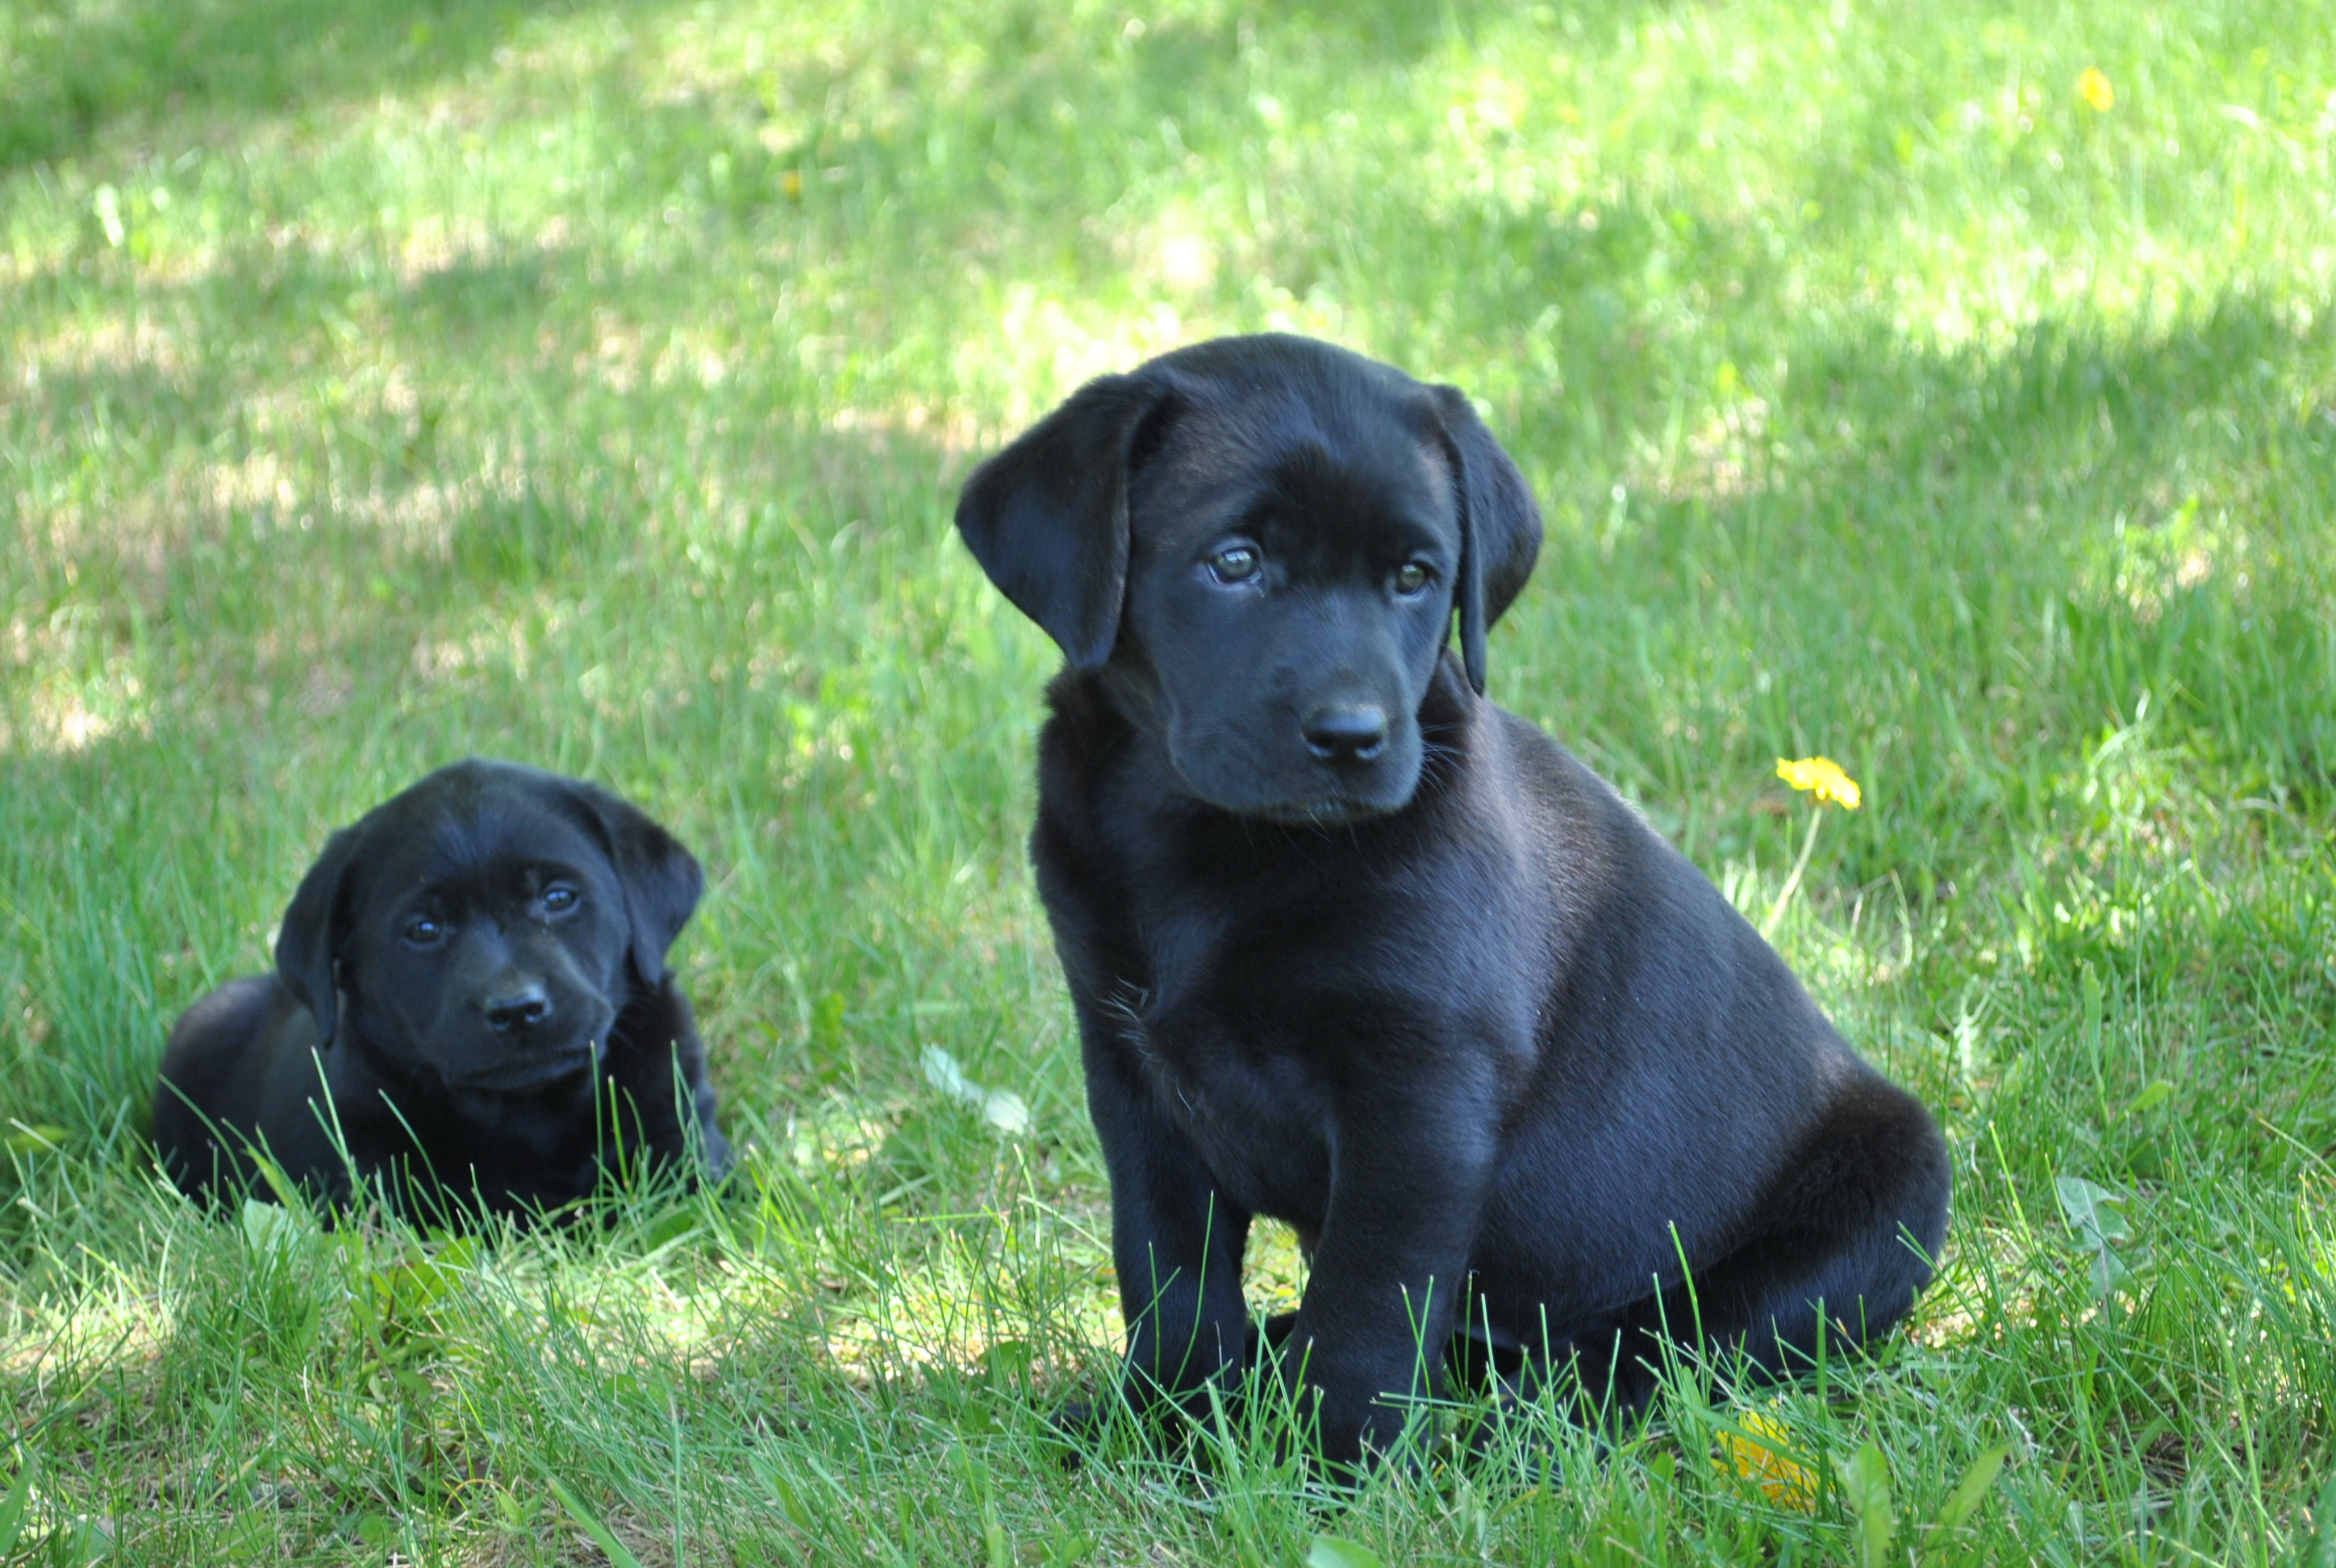 Black Lab Puppy Images wallpaper Black Lab Puppy Images hd wallpaper 2896x1944